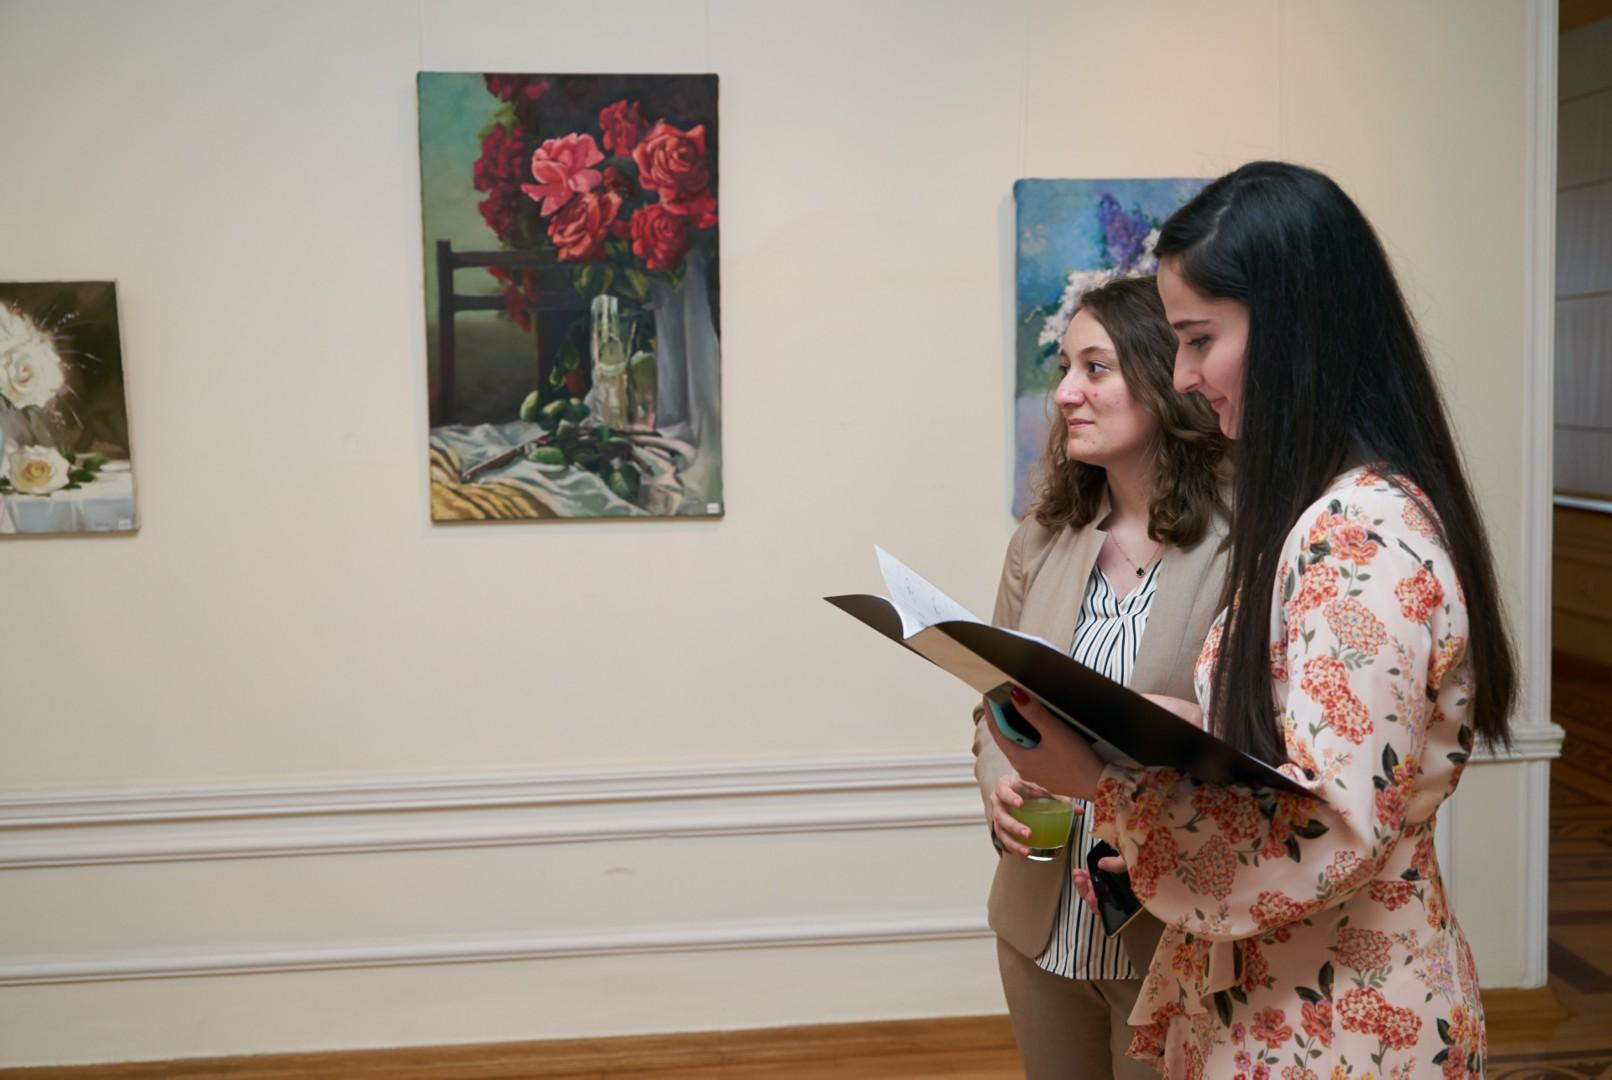 EY Azerbaijan Organized  Art Exhibition to Support Young Artists (PHOTO)